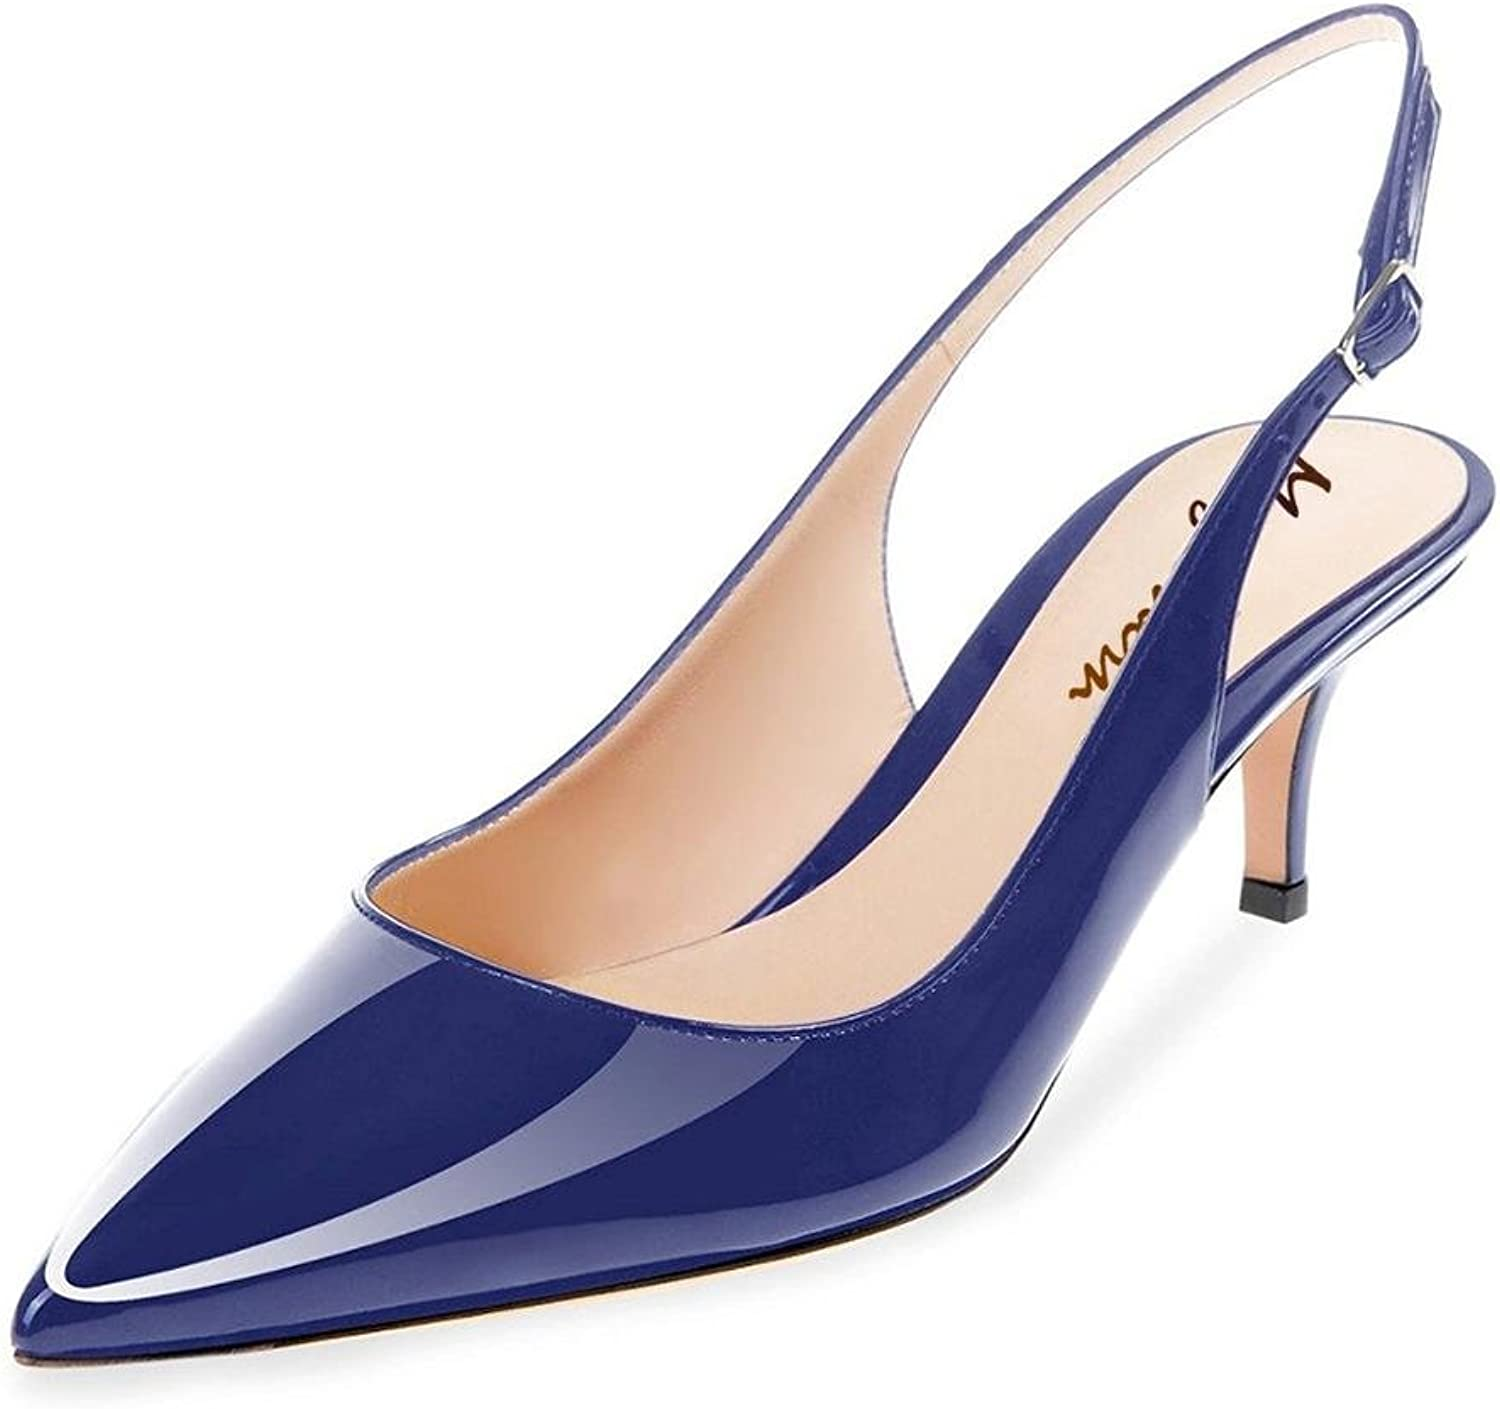 Maguidern Kitten Heel Sandals Patent Leather Pointed Toe Slingback Ankle Metal Buckle Strap Low Heel shoes Plus Size